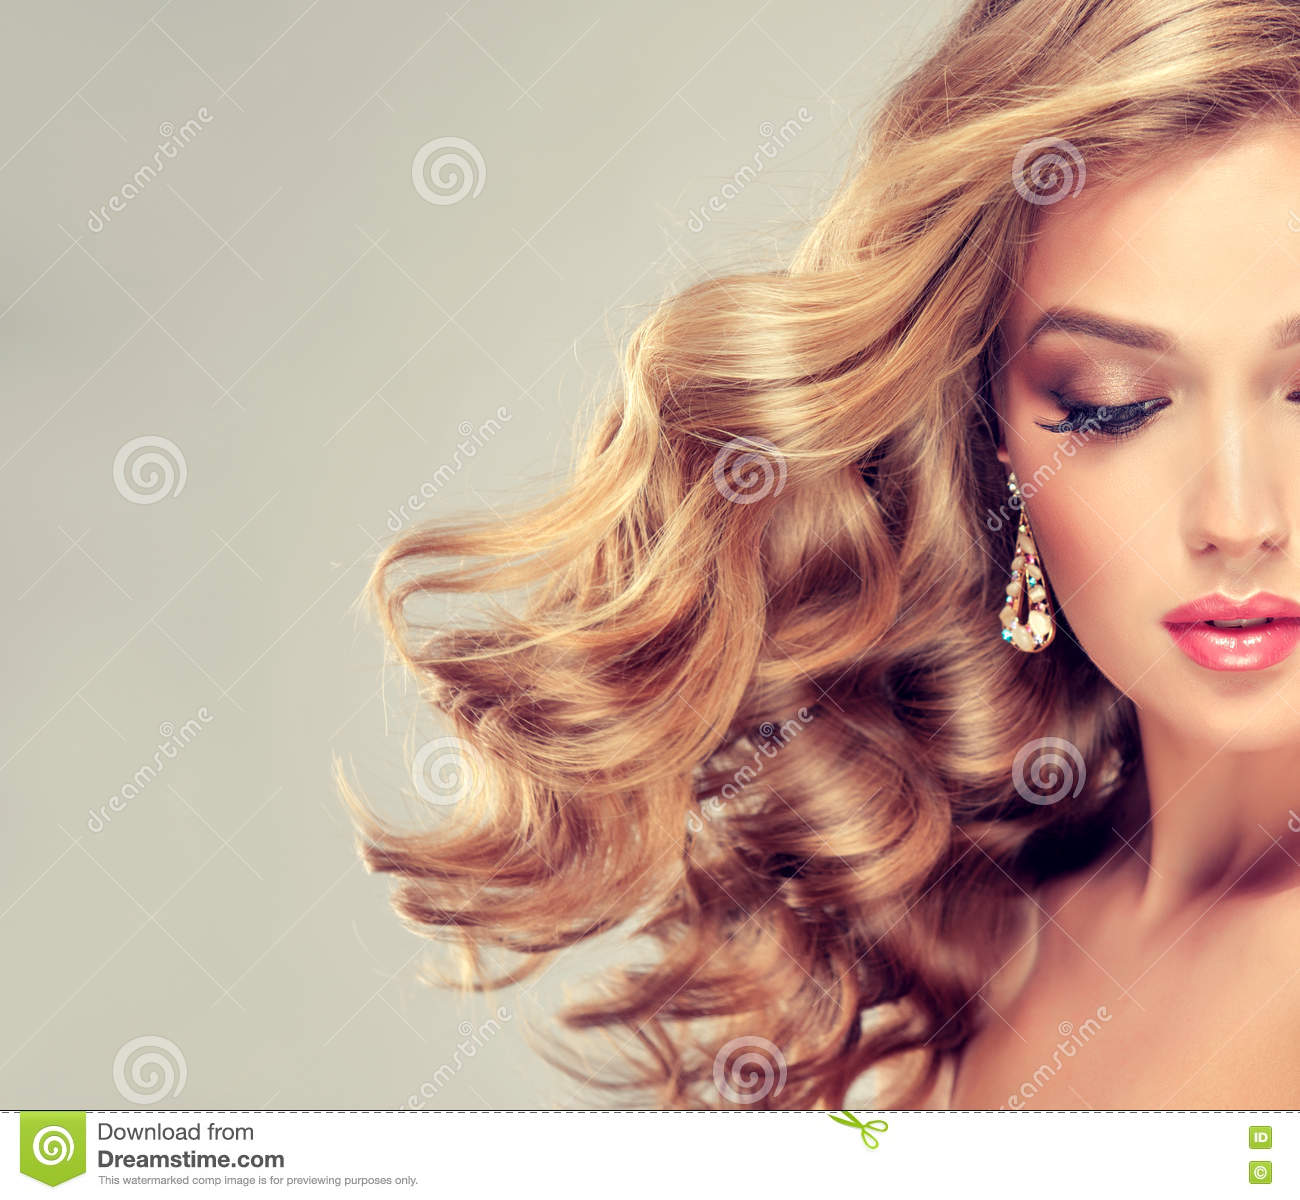 Beautiful Girl With An Elegant Hairstyle Stock Photo